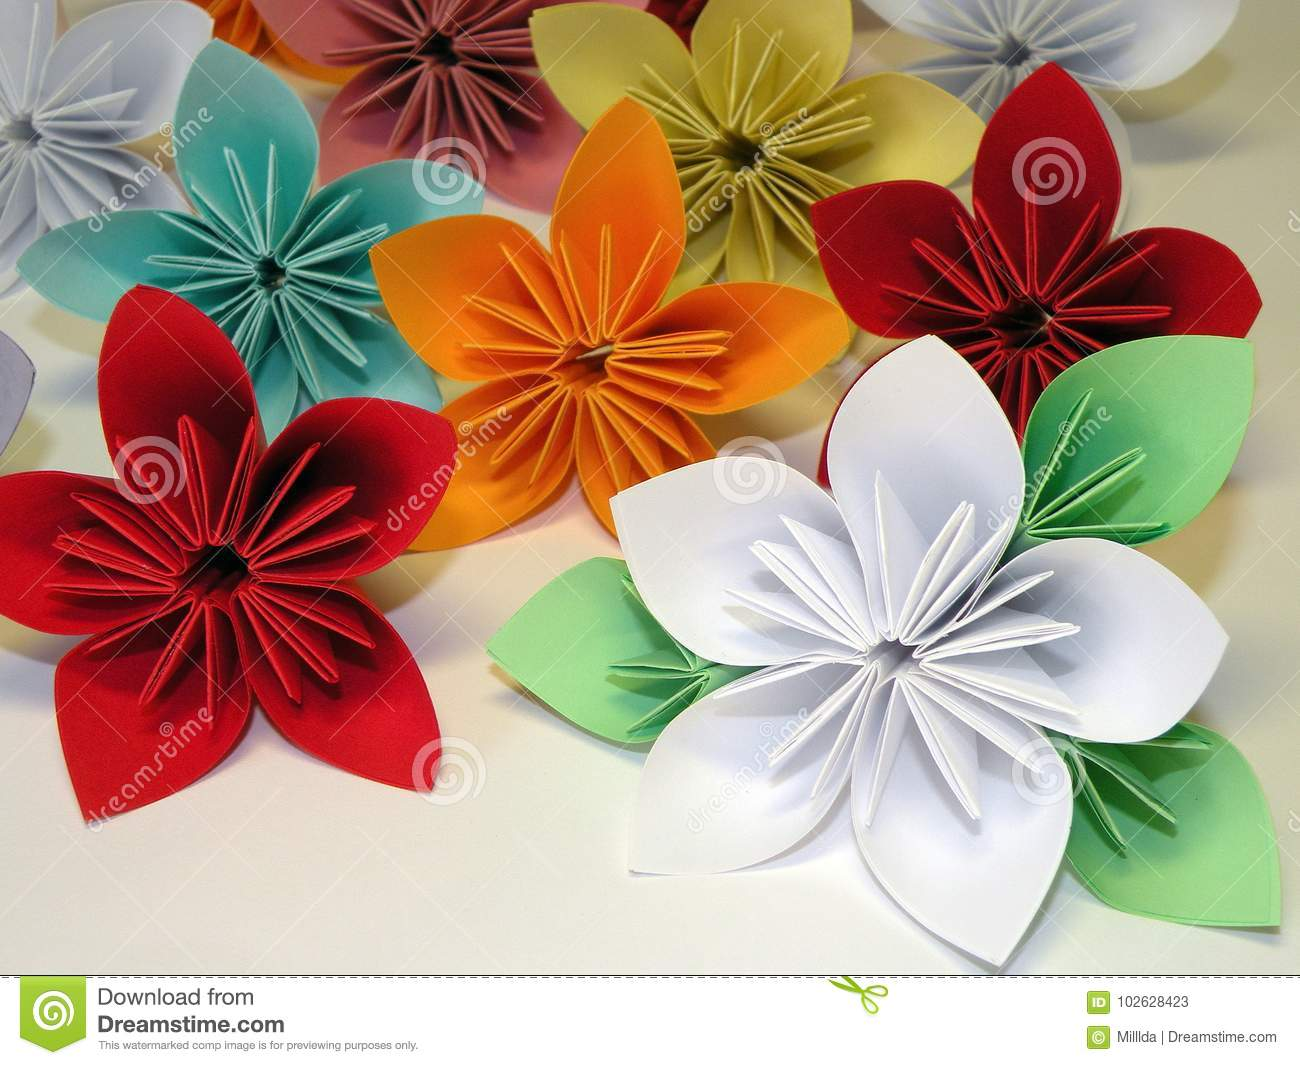 Colorful origami flowers stock image image of different 102628423 download colorful origami flowers stock image image of different 102628423 mightylinksfo